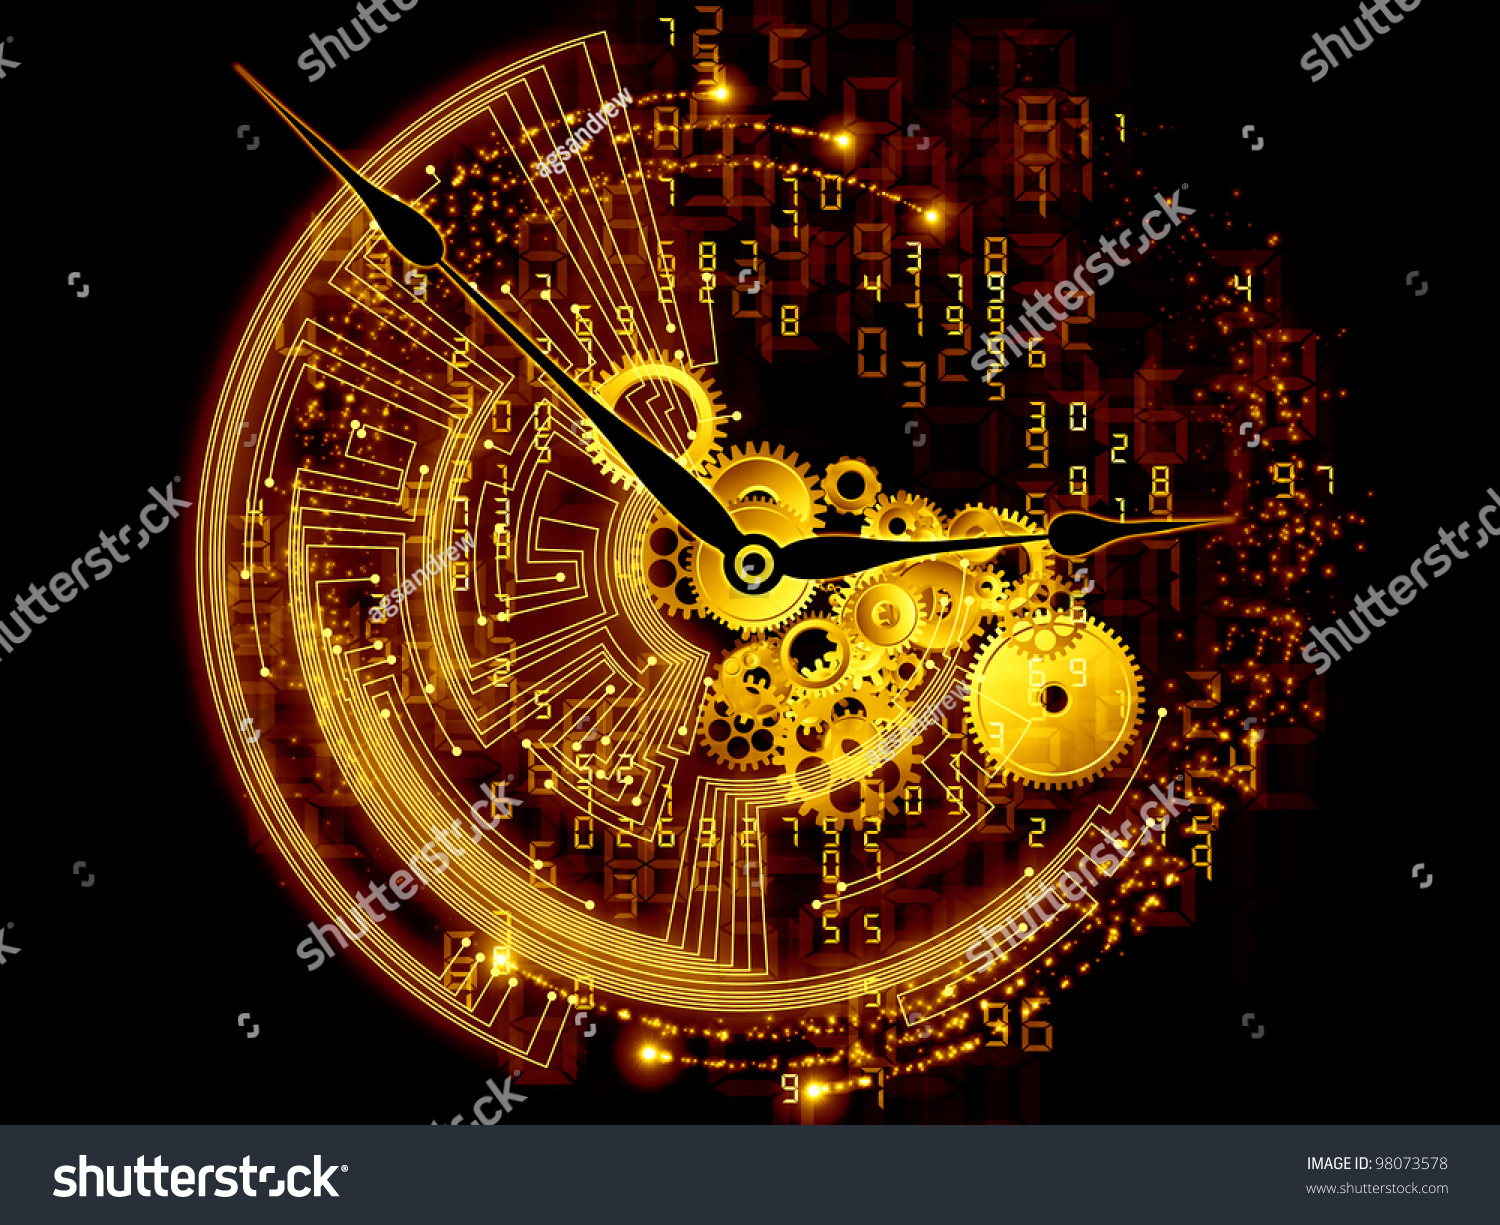 Circuit Boards With Clock Hands Royalty Free Stock Image Composition Gears Abstract Design Illustration Of And Elements As A Concept Metaphor On Subject